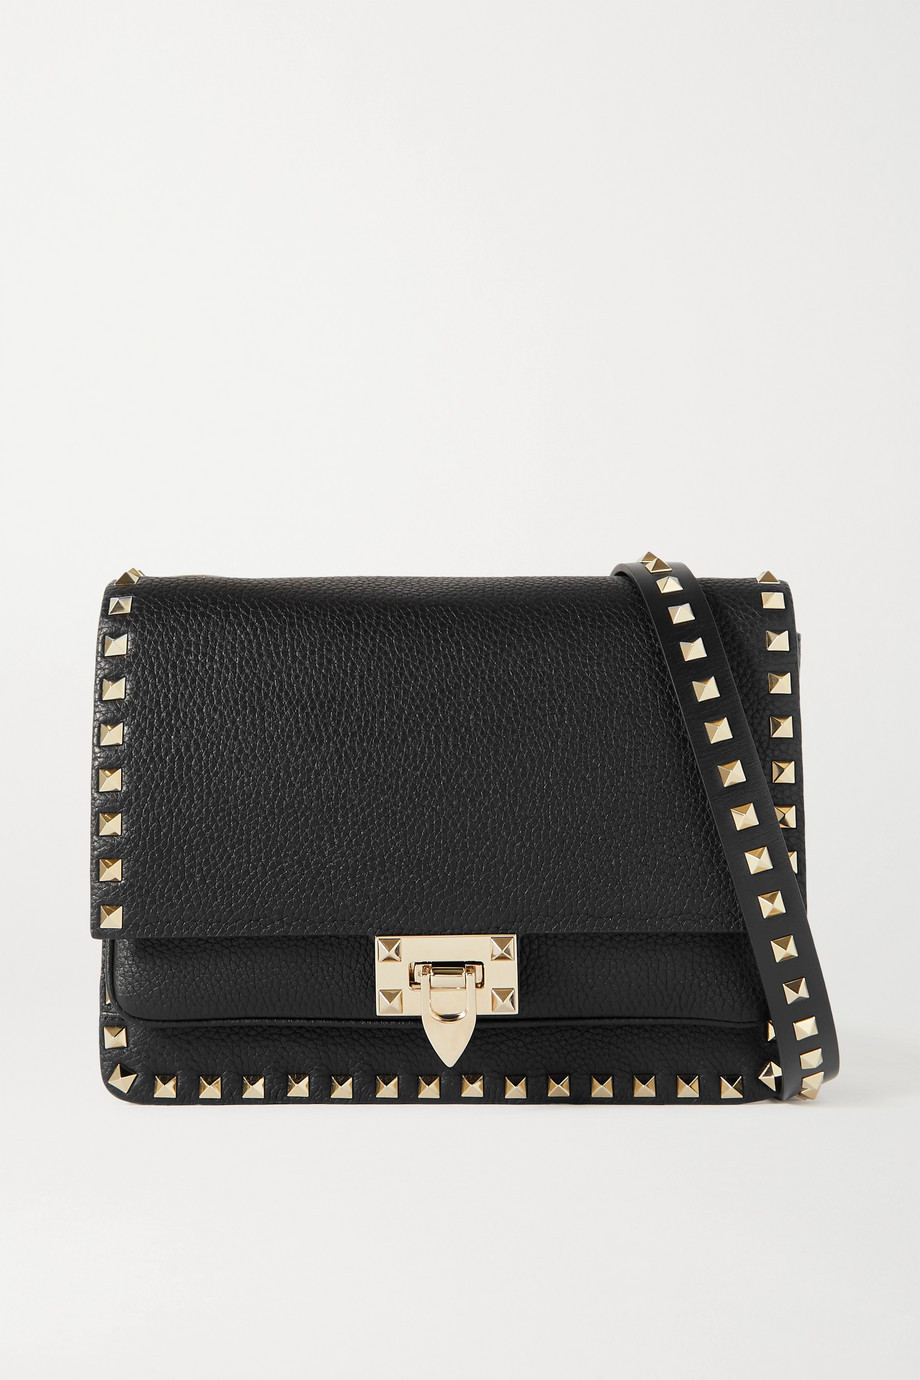 VALENTINO Valentino Garavani Rockstud textured-leather shoulder bag